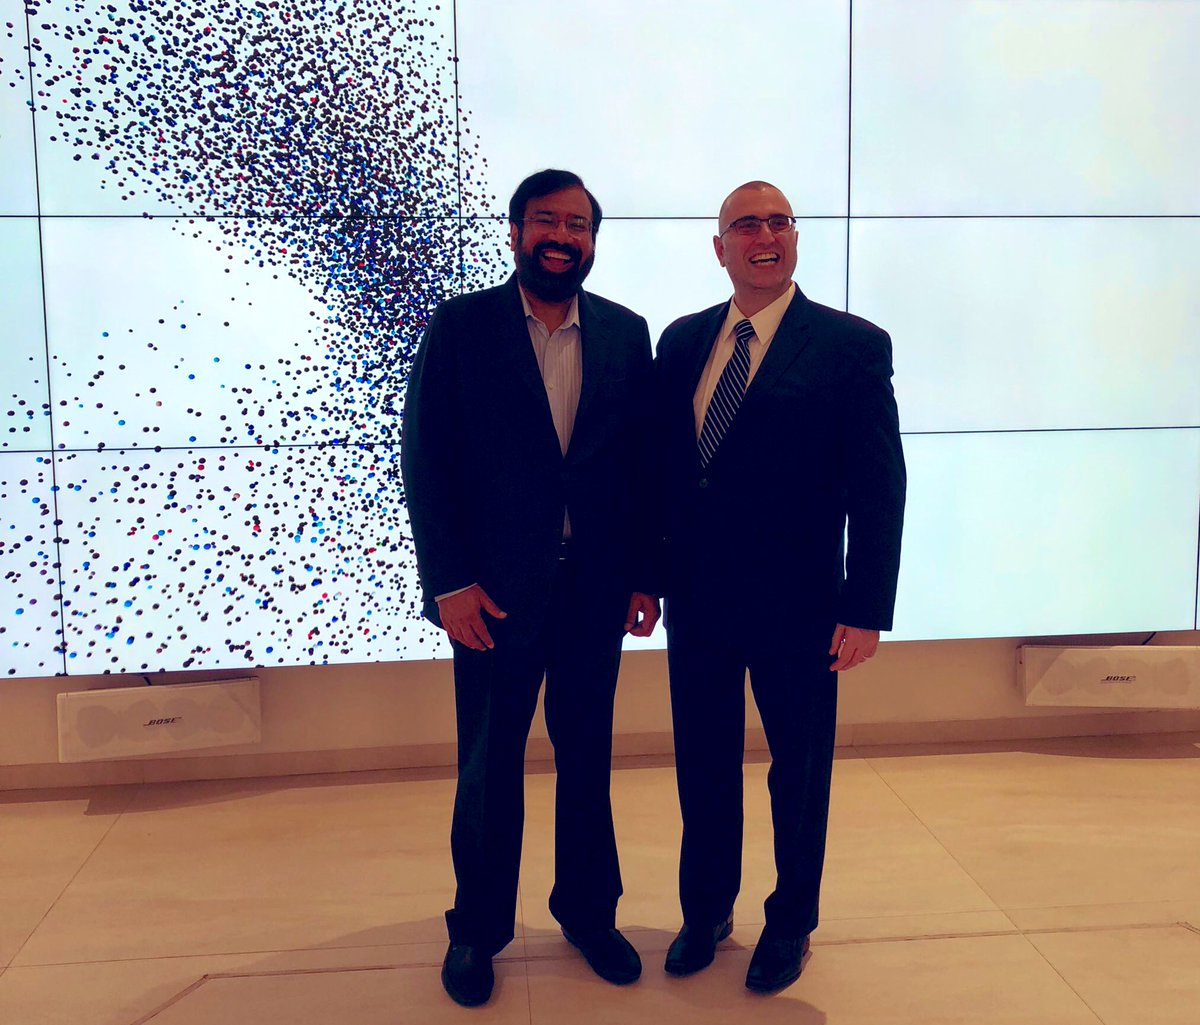 I have admired the shared wisdom, and thoughtful engagements of @hvgoenka for many years on @Twitter. Earlier this year, I met Mr. Goenka in person in Mumbai, India. I was truly overwhelmed by his generosity, kindhearted spirit and business intellect. I am thankful to know him.